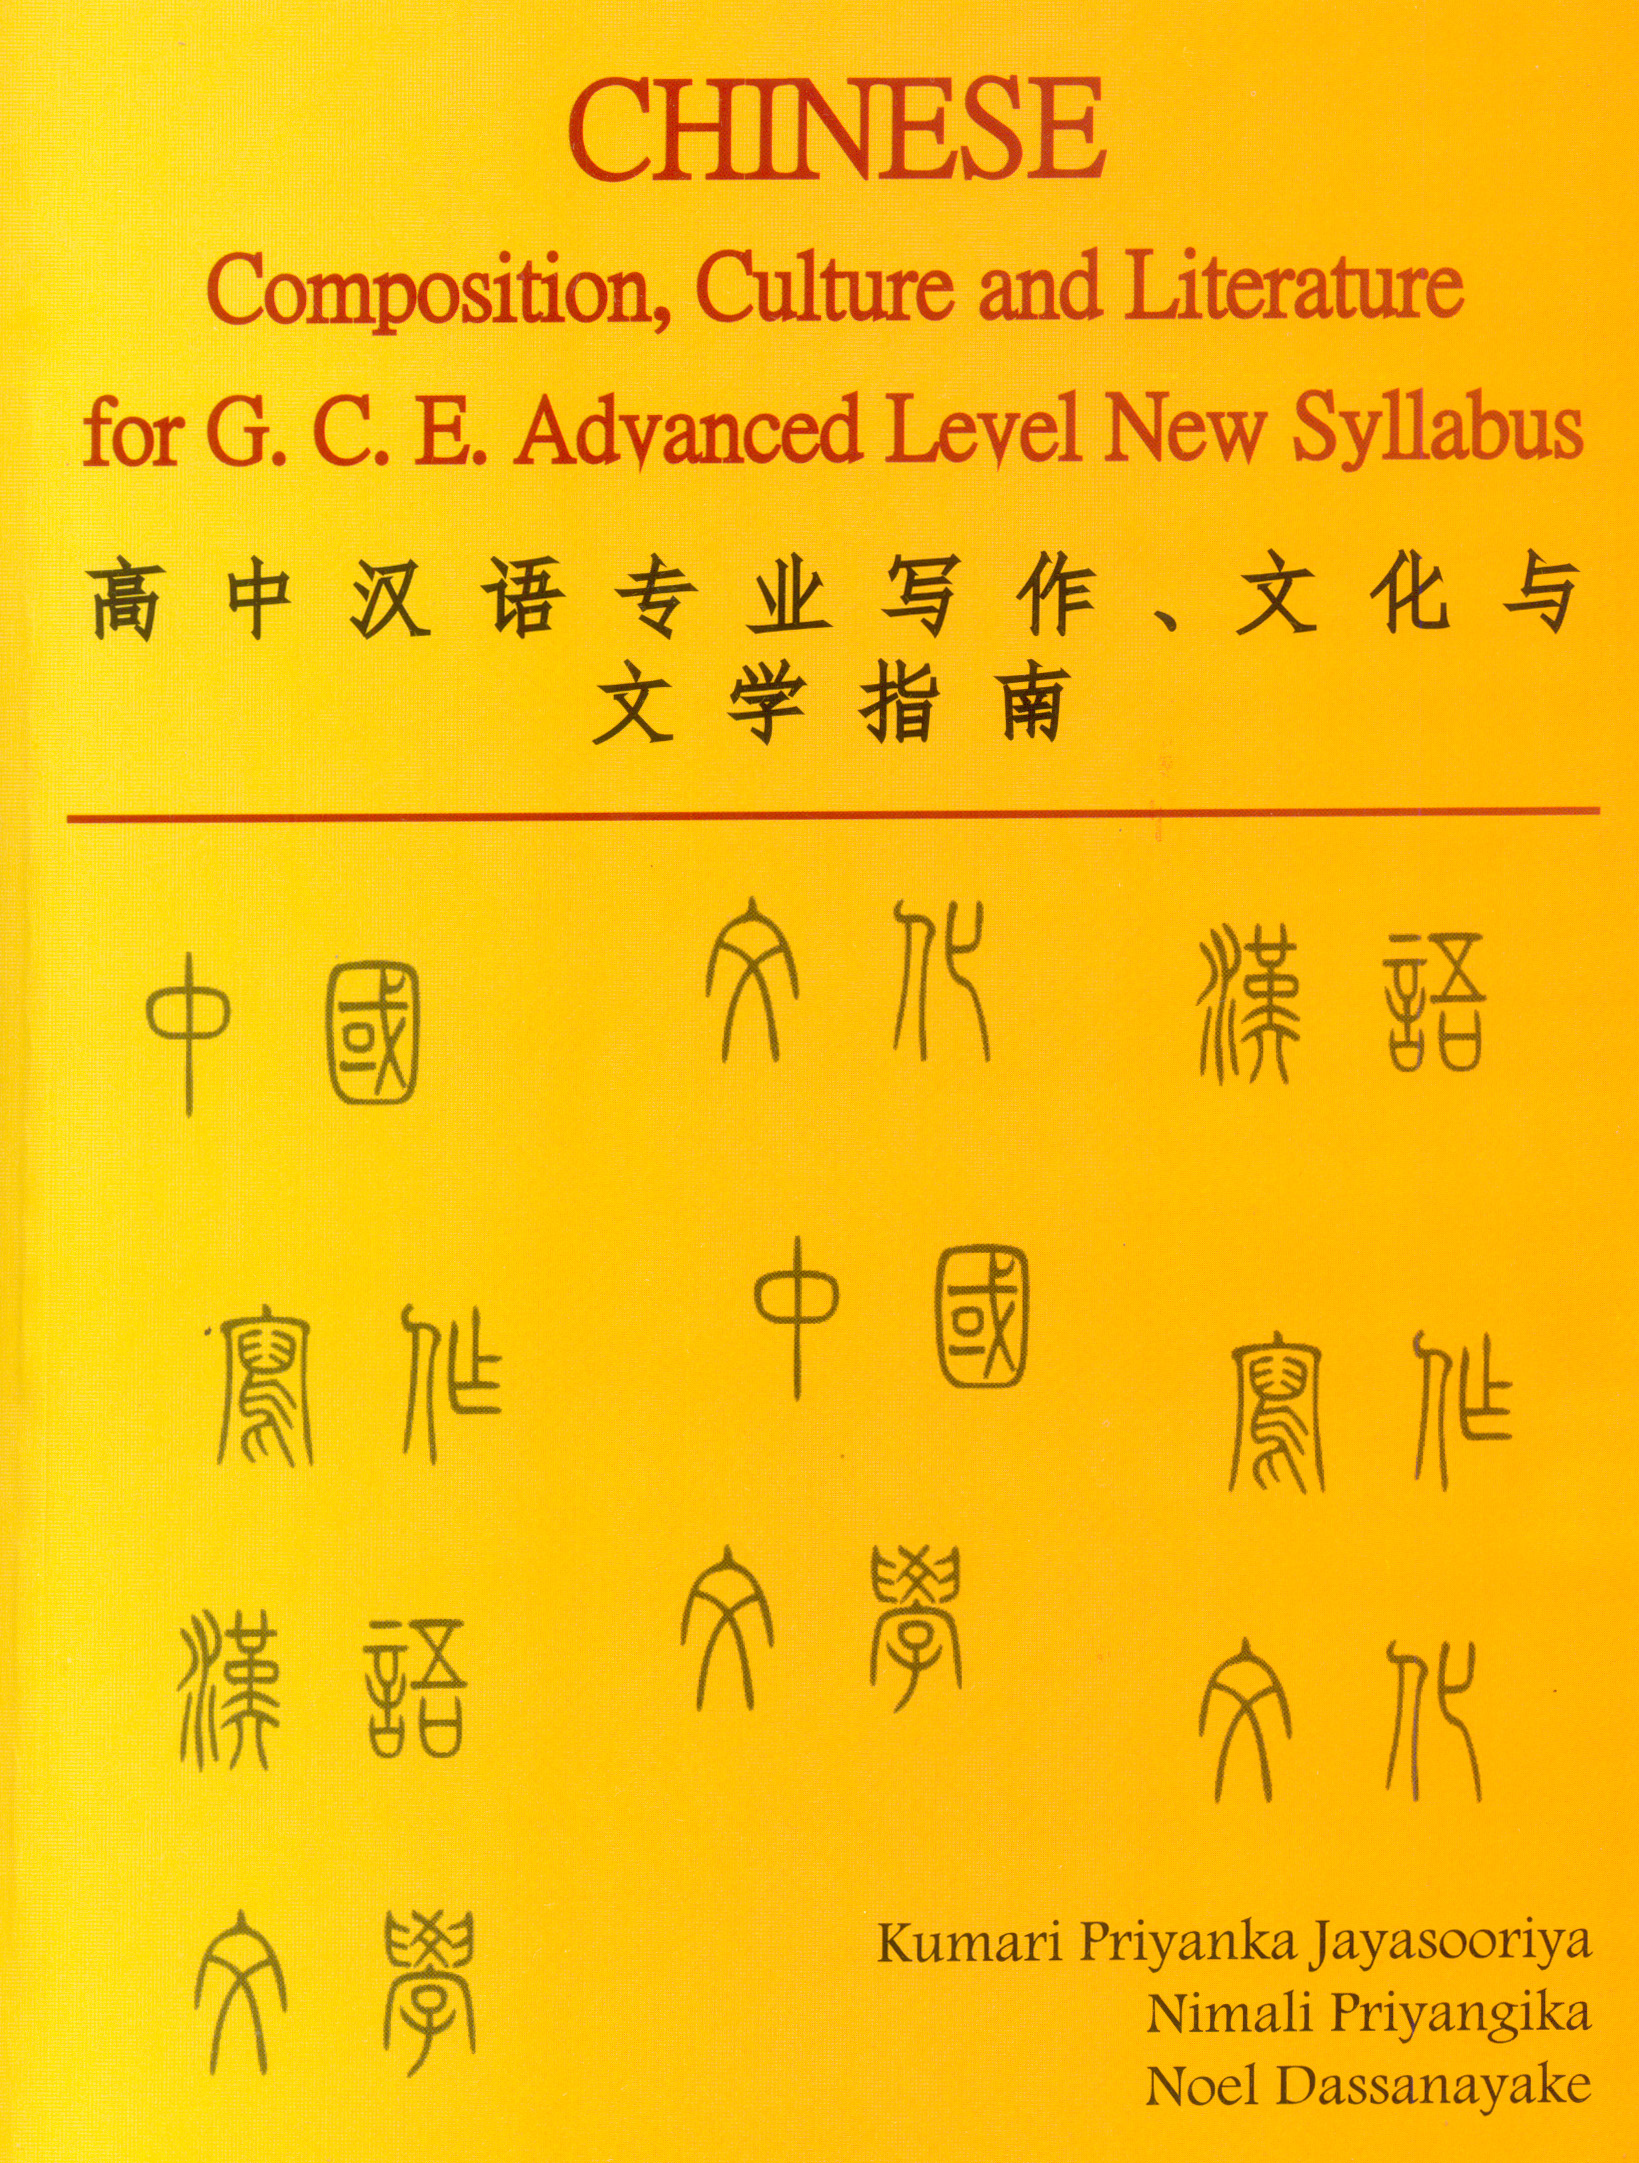 Chinese Composition, Culture And Literature For G. C. E. Advanced Level New Syllabus